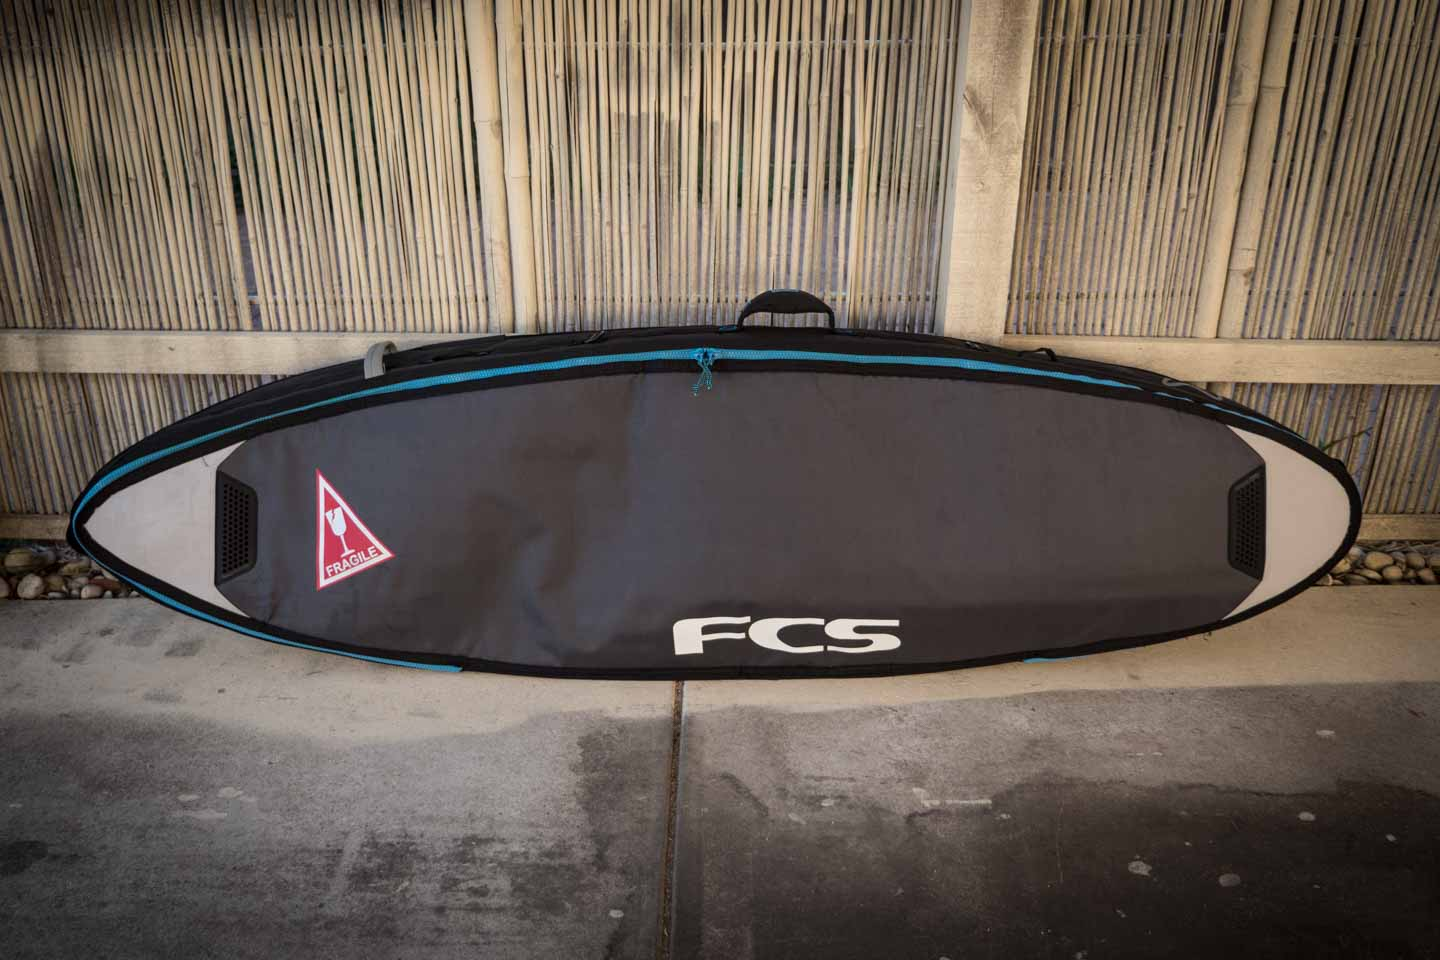 youkeepustraveling lost my Al Merrick Rookie surfboard with FCS Doubel Travel Cover board bag